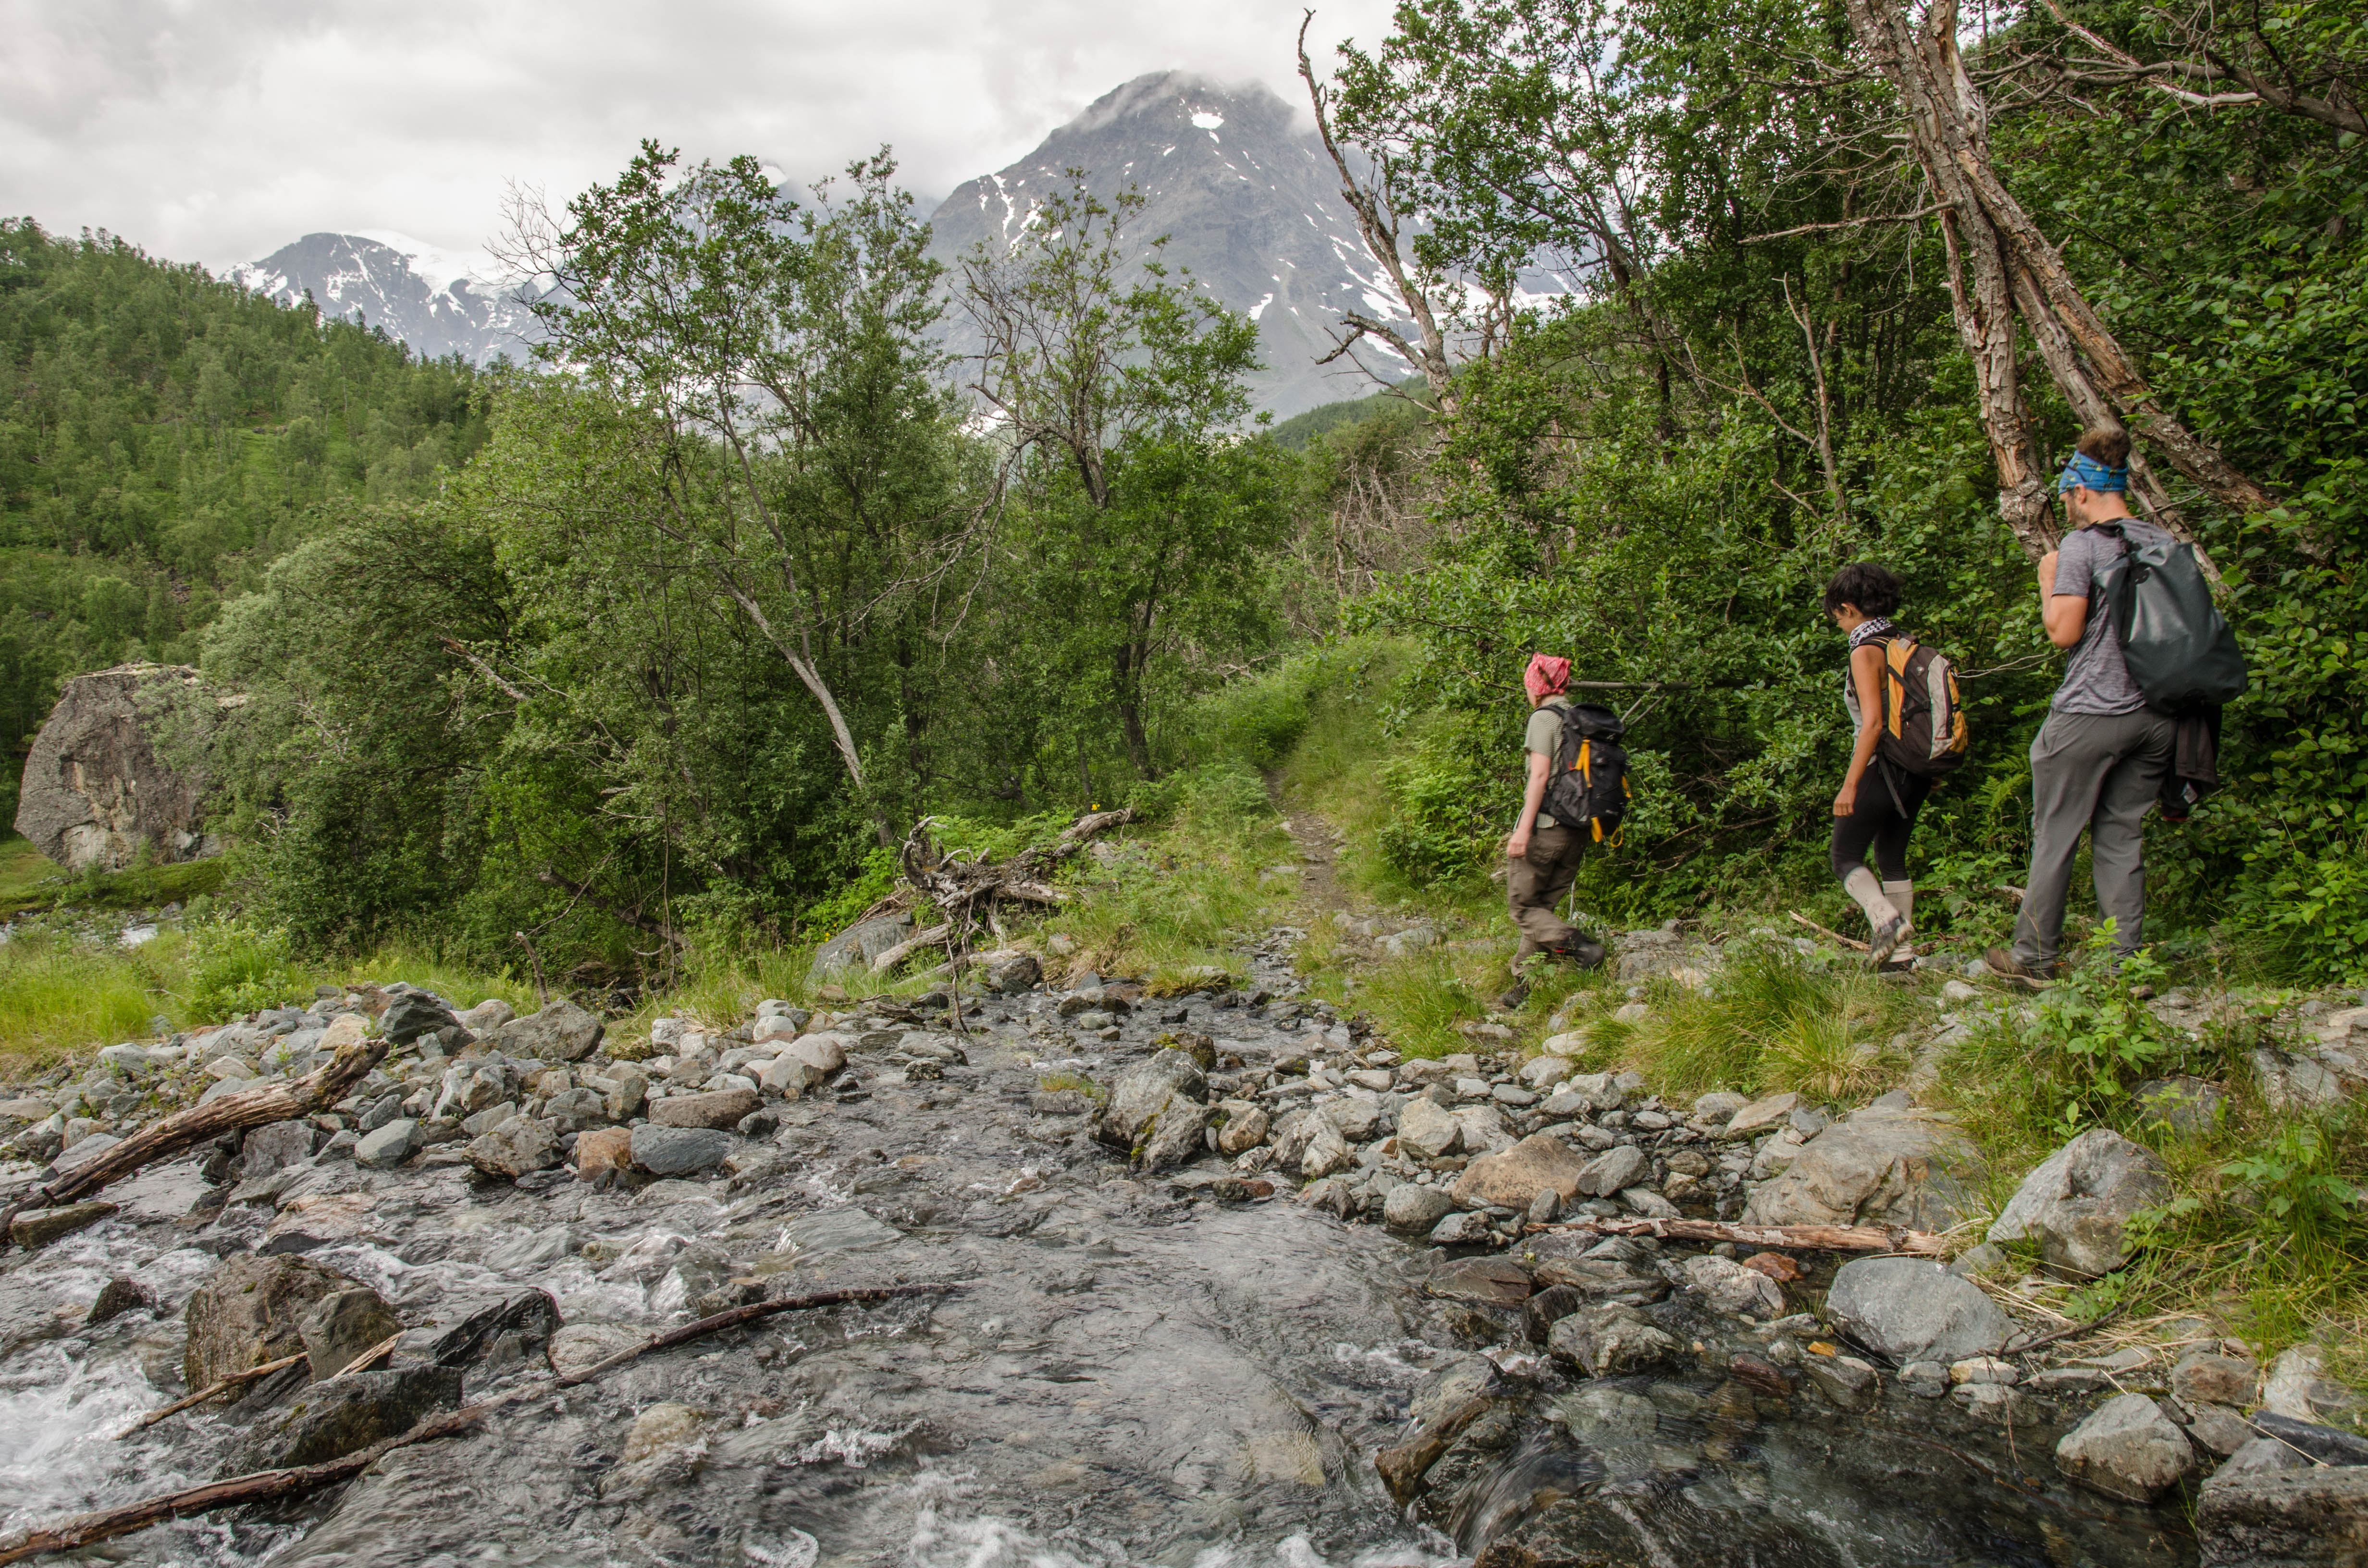 Guided hiking trip to nowhere - Adventure by Design